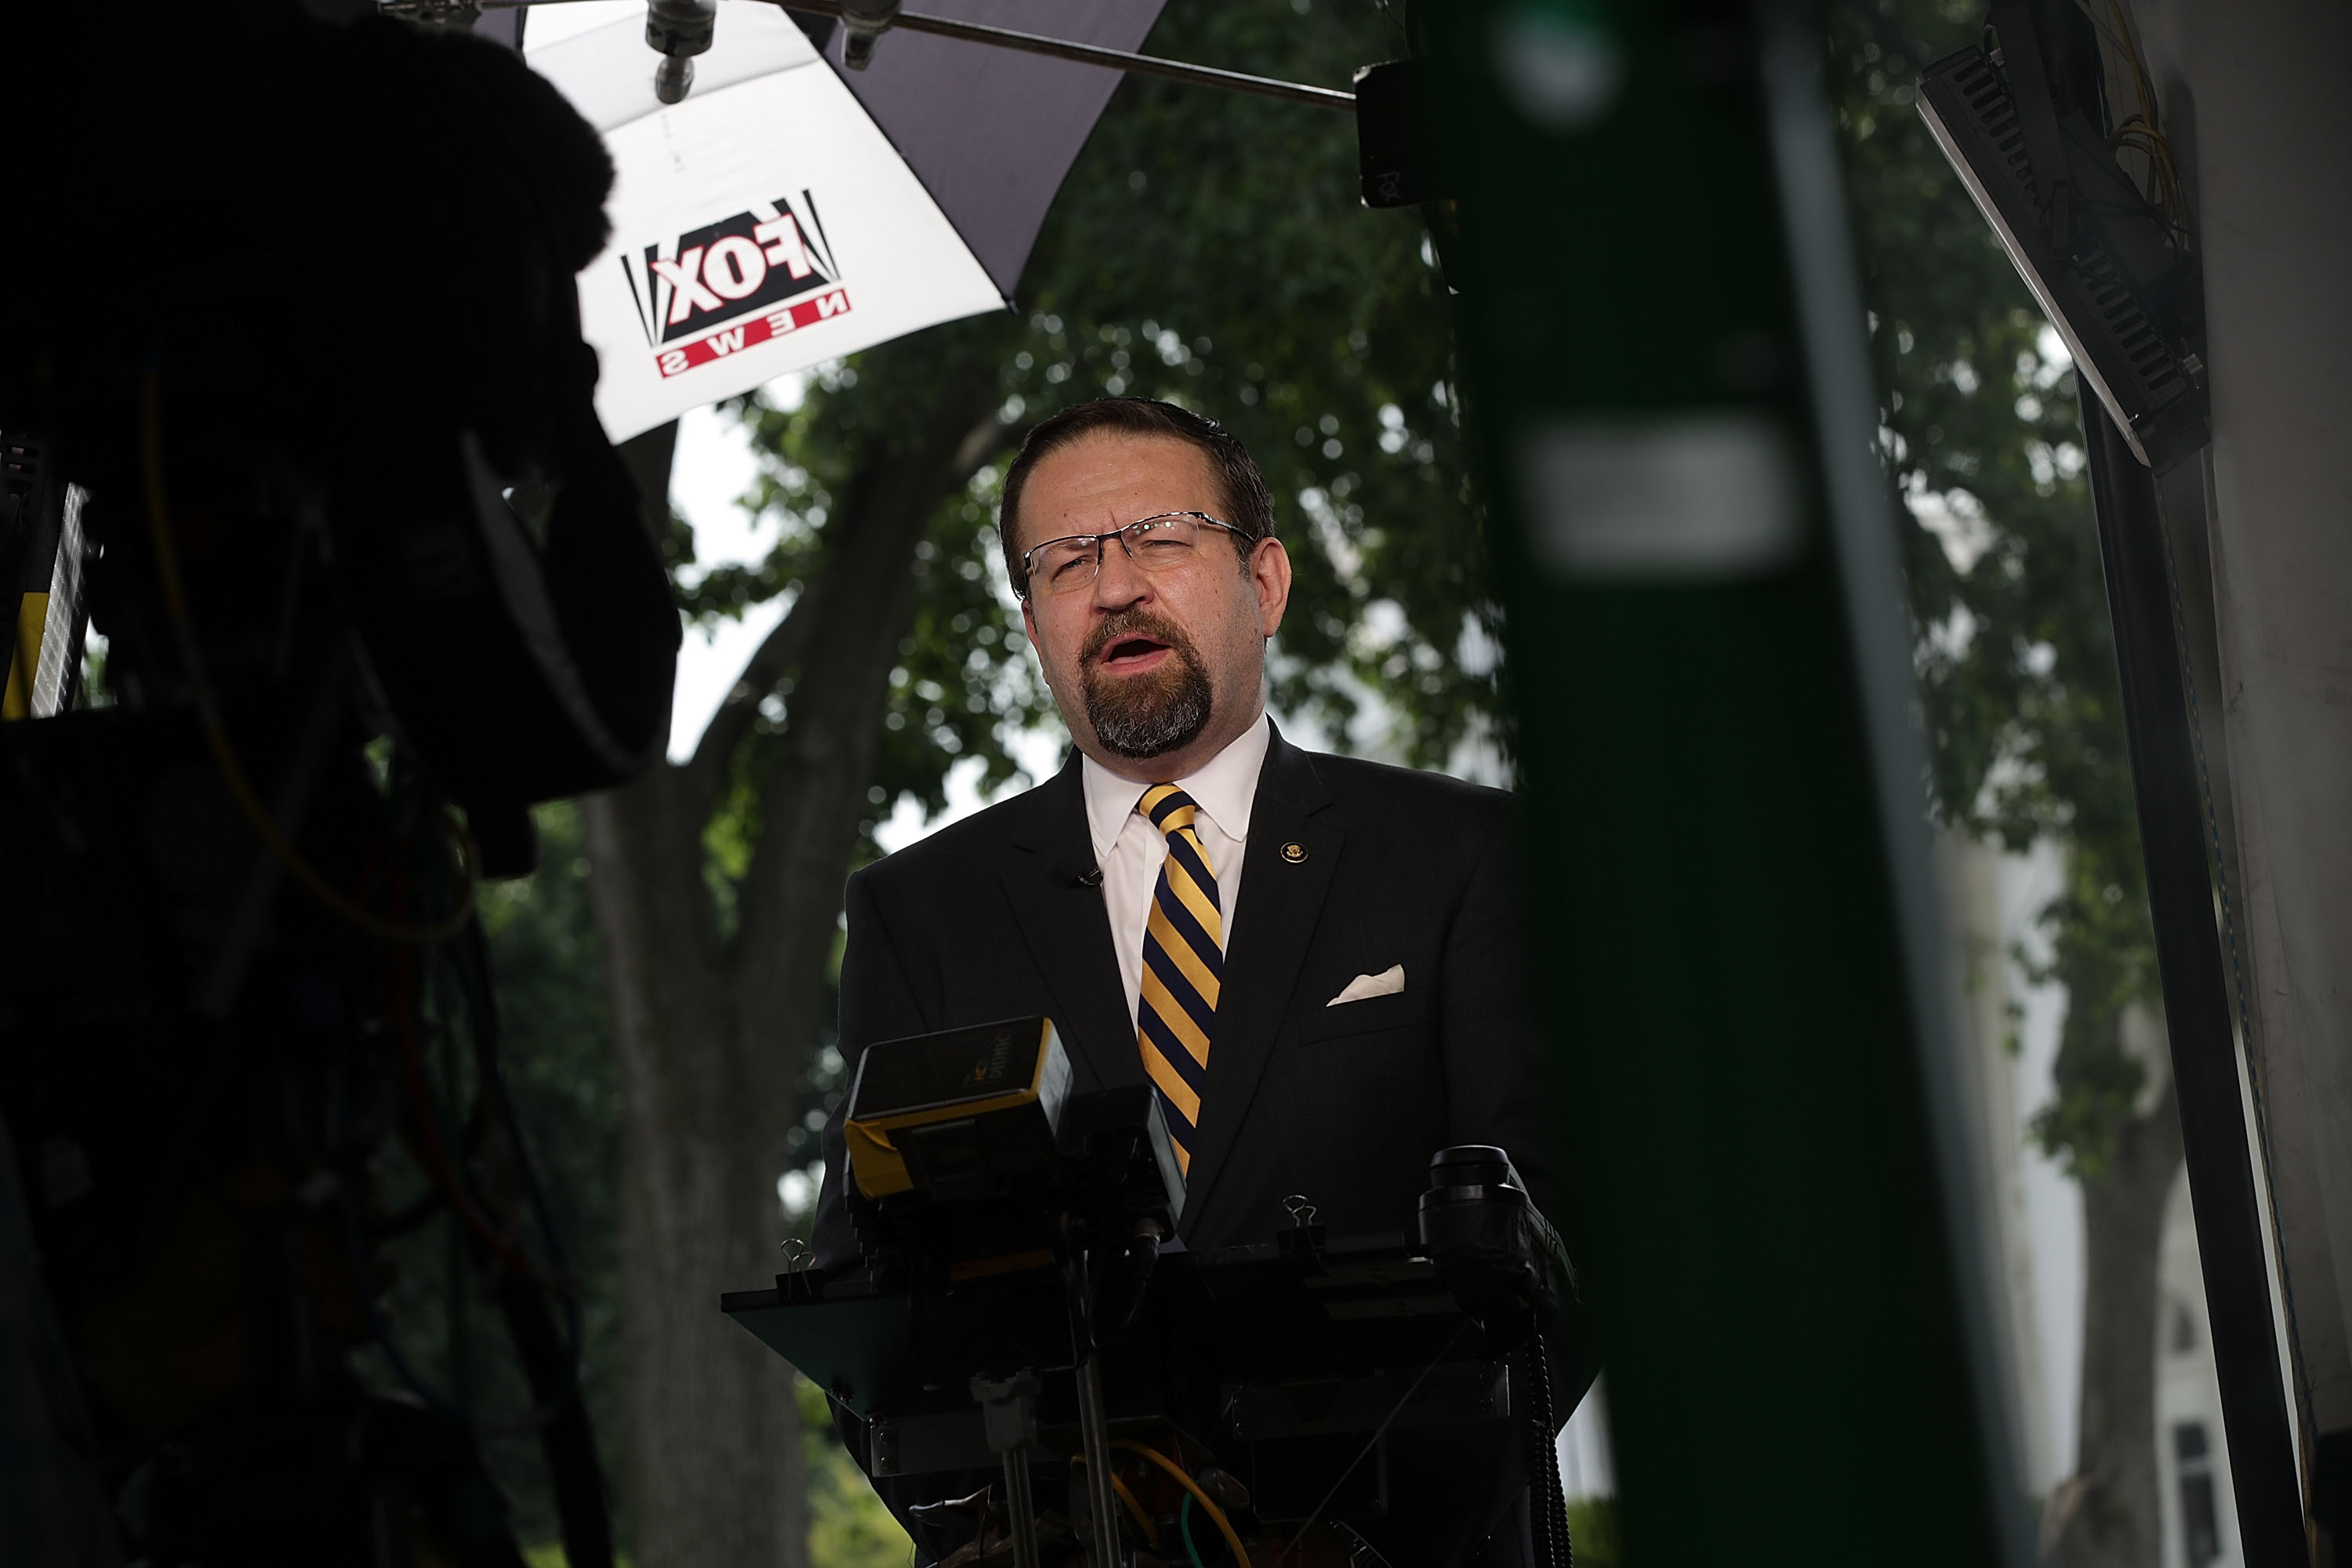 Star Wars President Sebastian Gorka speaks as he is interviewed by Fox News remotely from the White House June 22, 2017 in Washington, DC.